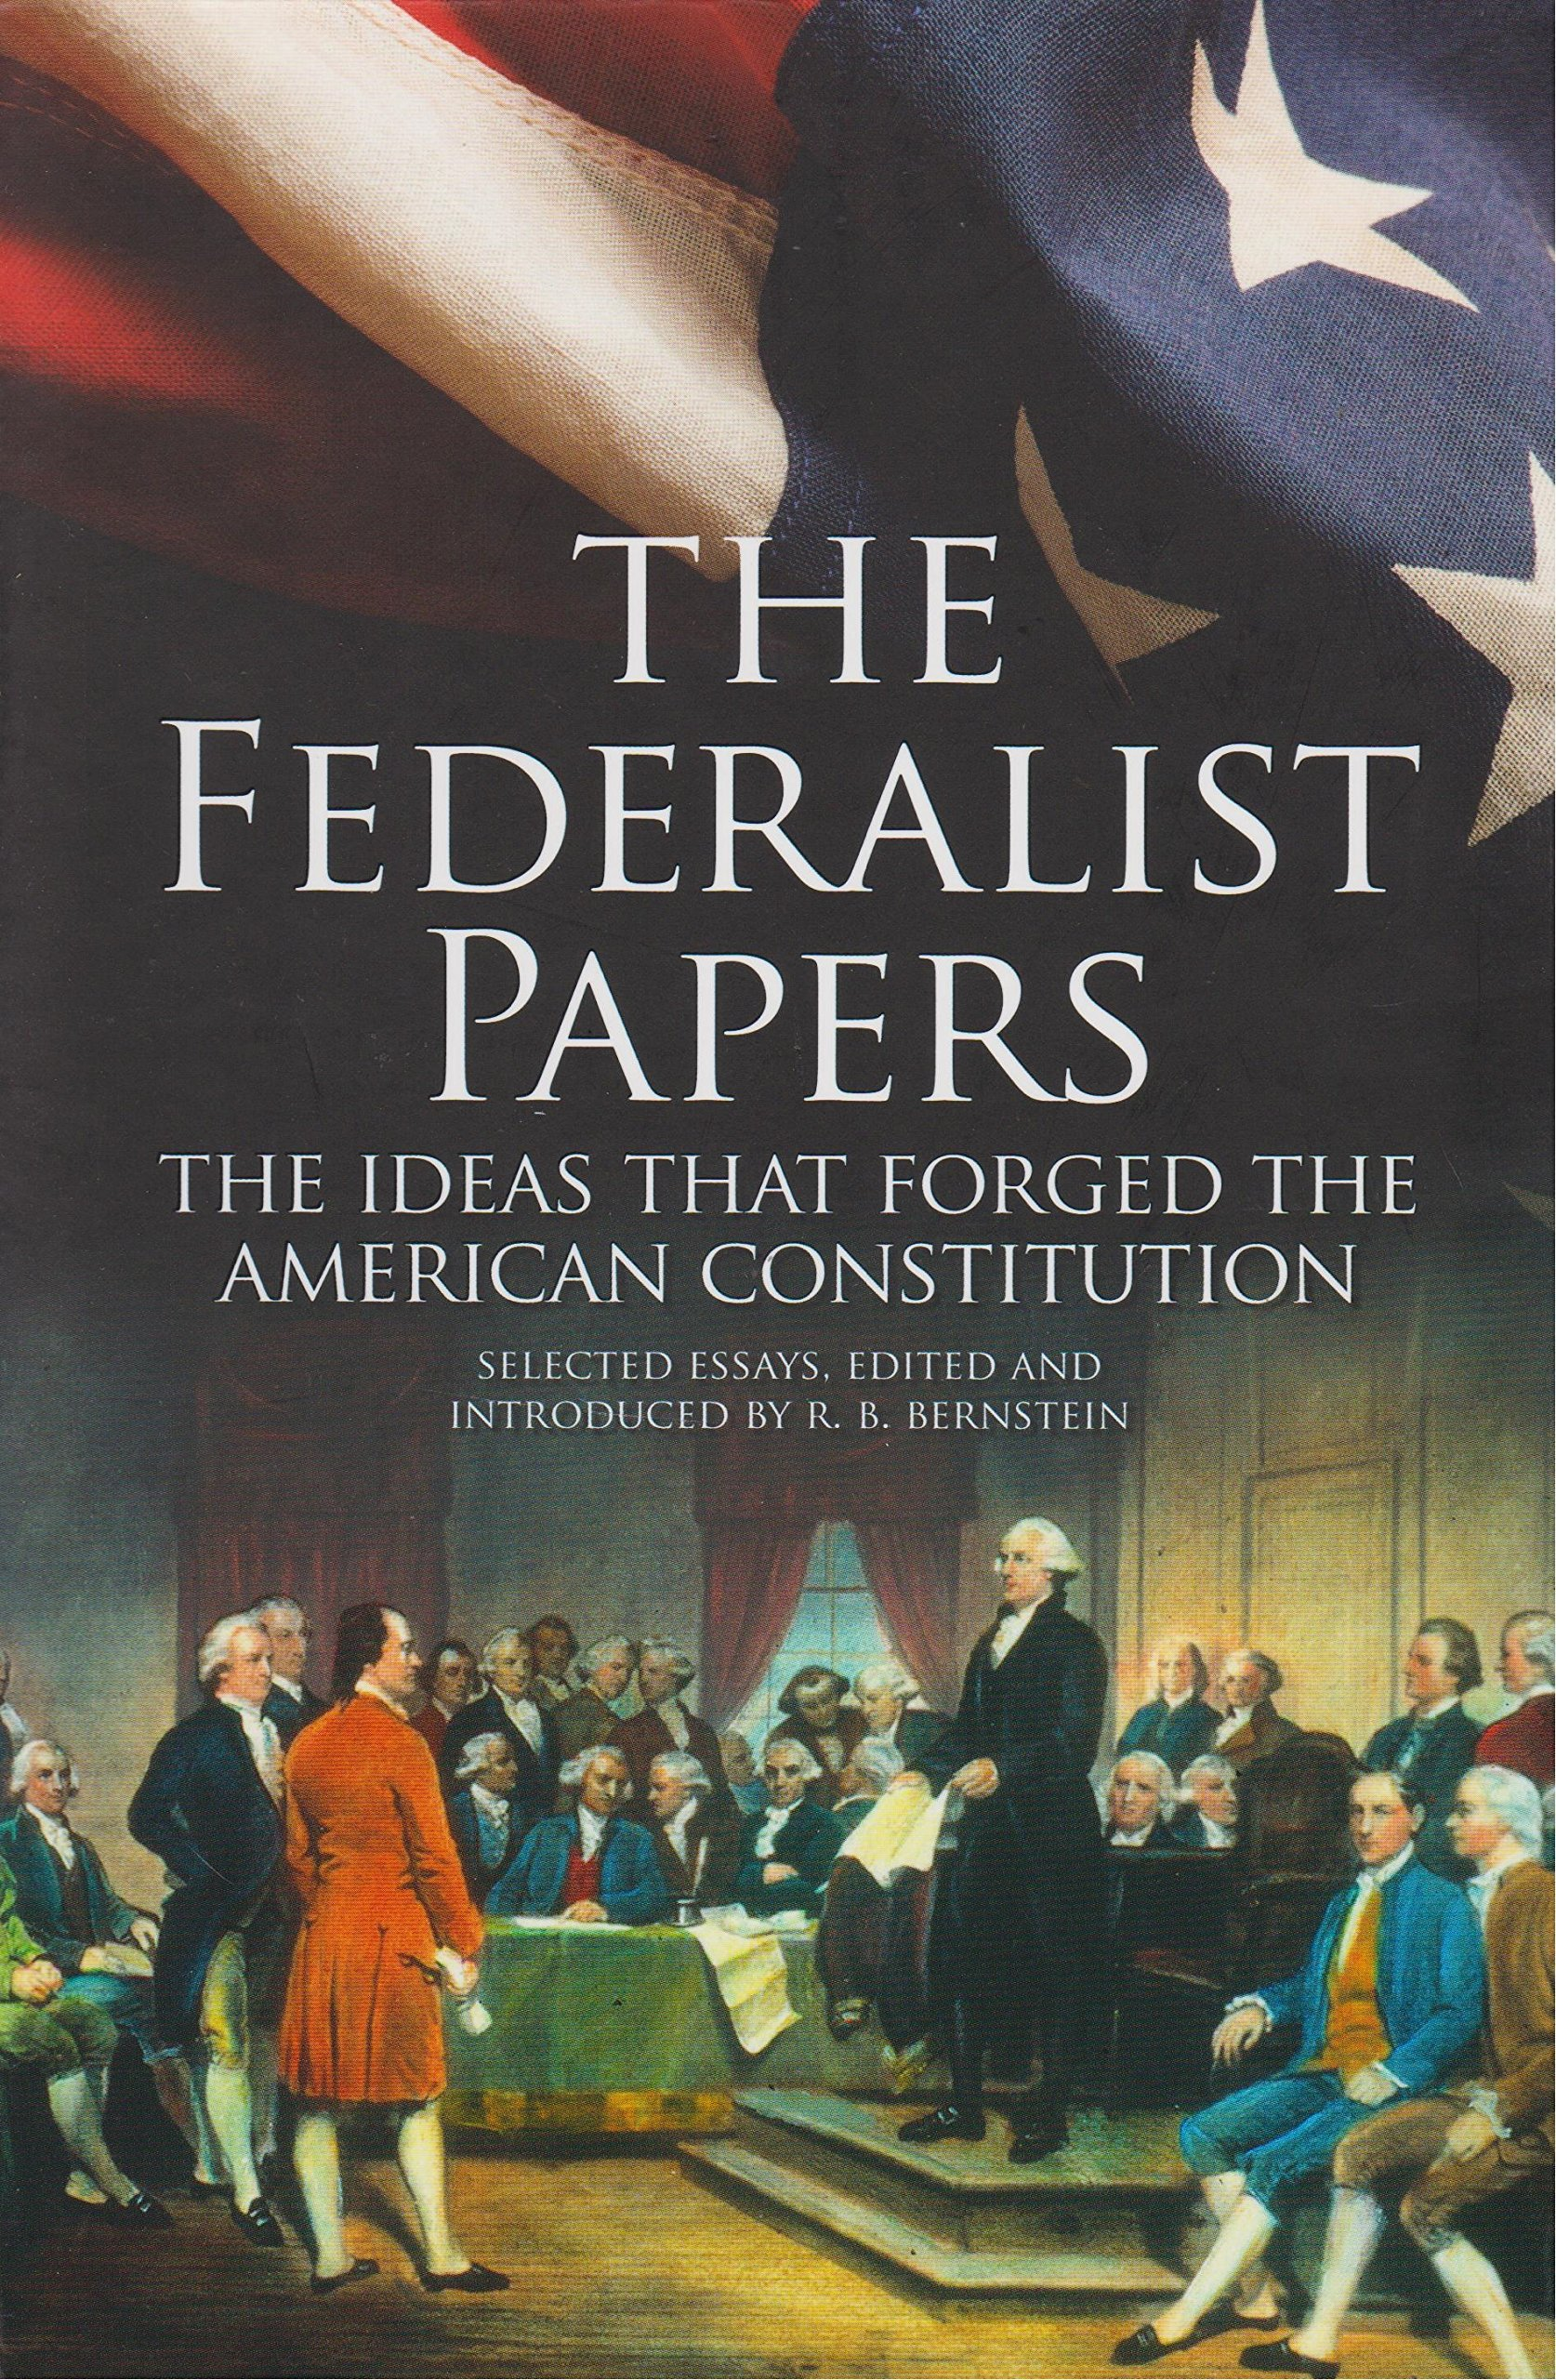 federalist papers and bill of rights essay The federalist papers collection of essays advocating the ratification of the u s constitution, published 1787-88 the federalist papers are considered by many to be among the founding classics of american political thought, along with the declaration of independence, the constitution, and the bill of rights.